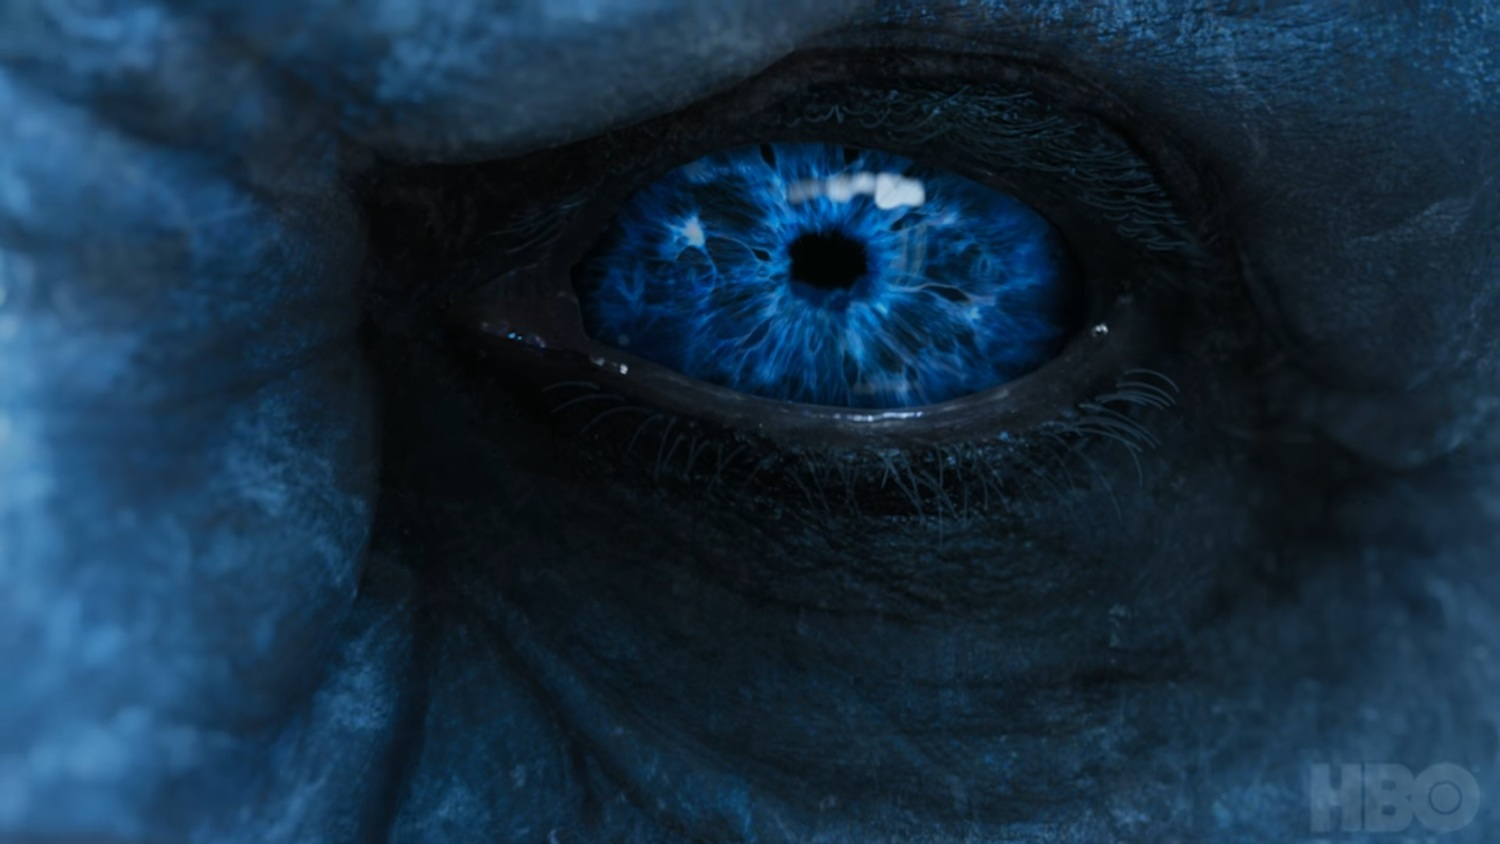 White Walker Game of Thrones Long Walk teaser